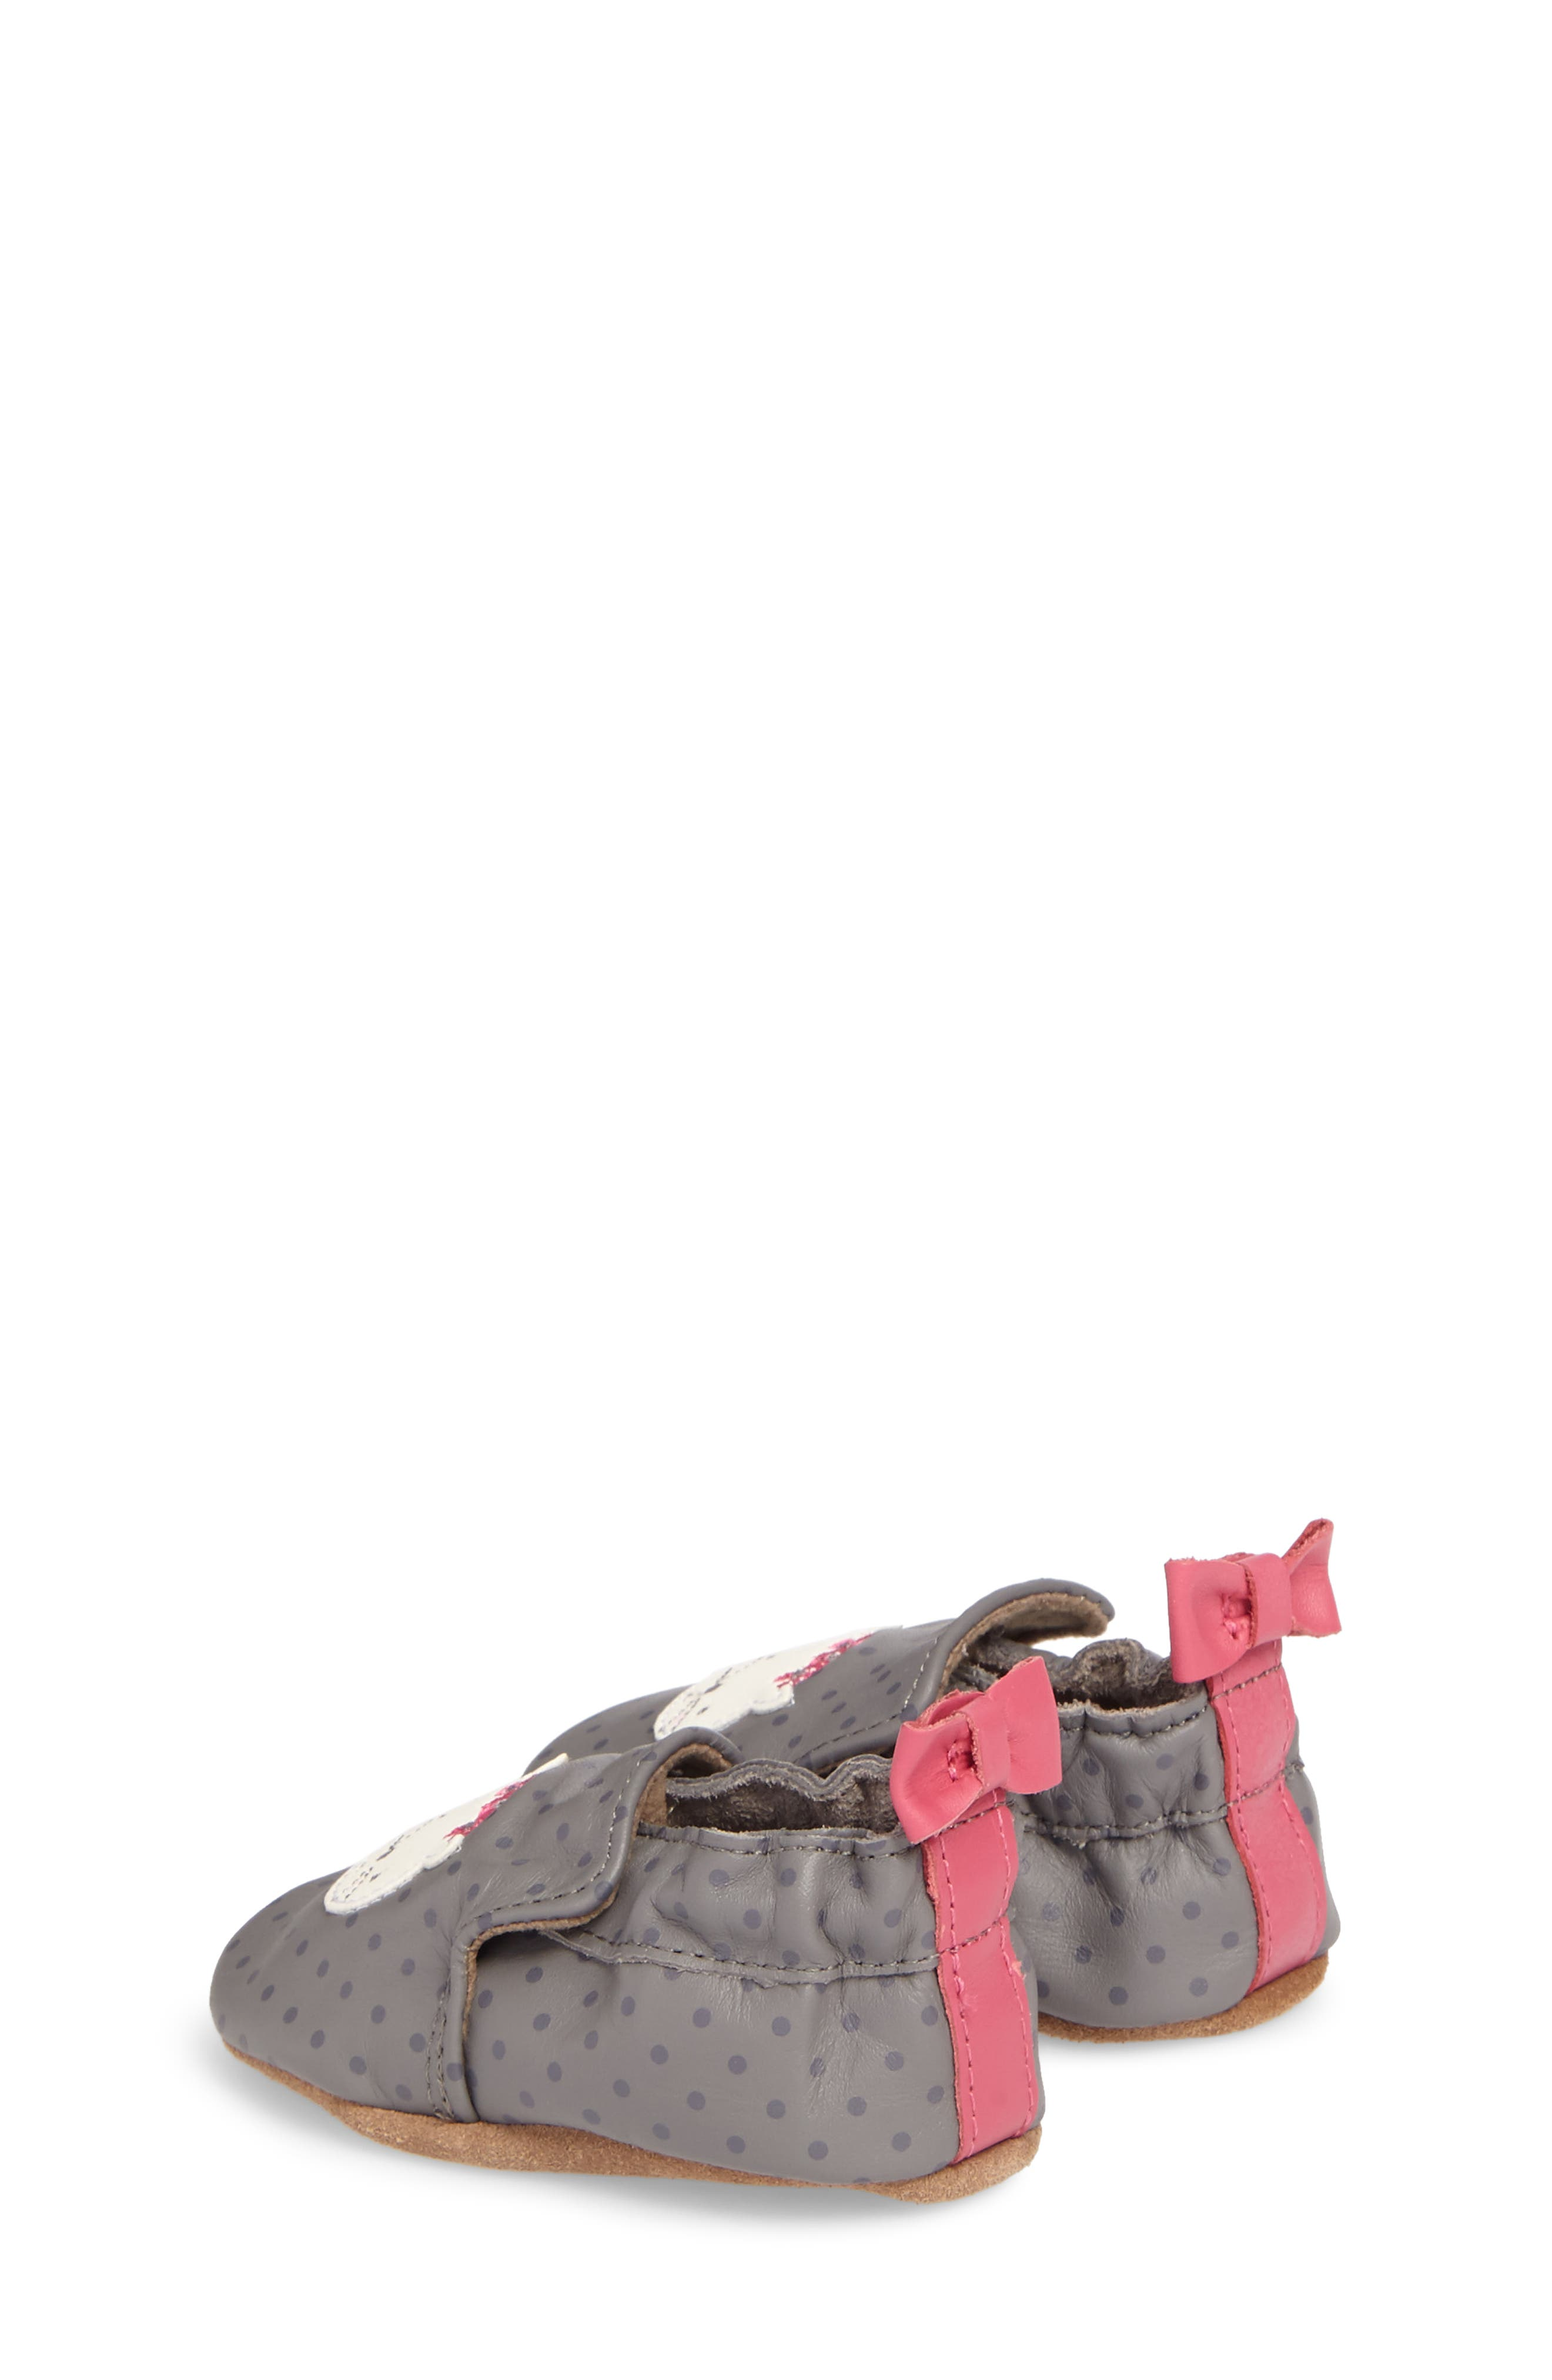 Miss Kitty Crib Shoe,                             Alternate thumbnail 2, color,                             GREY